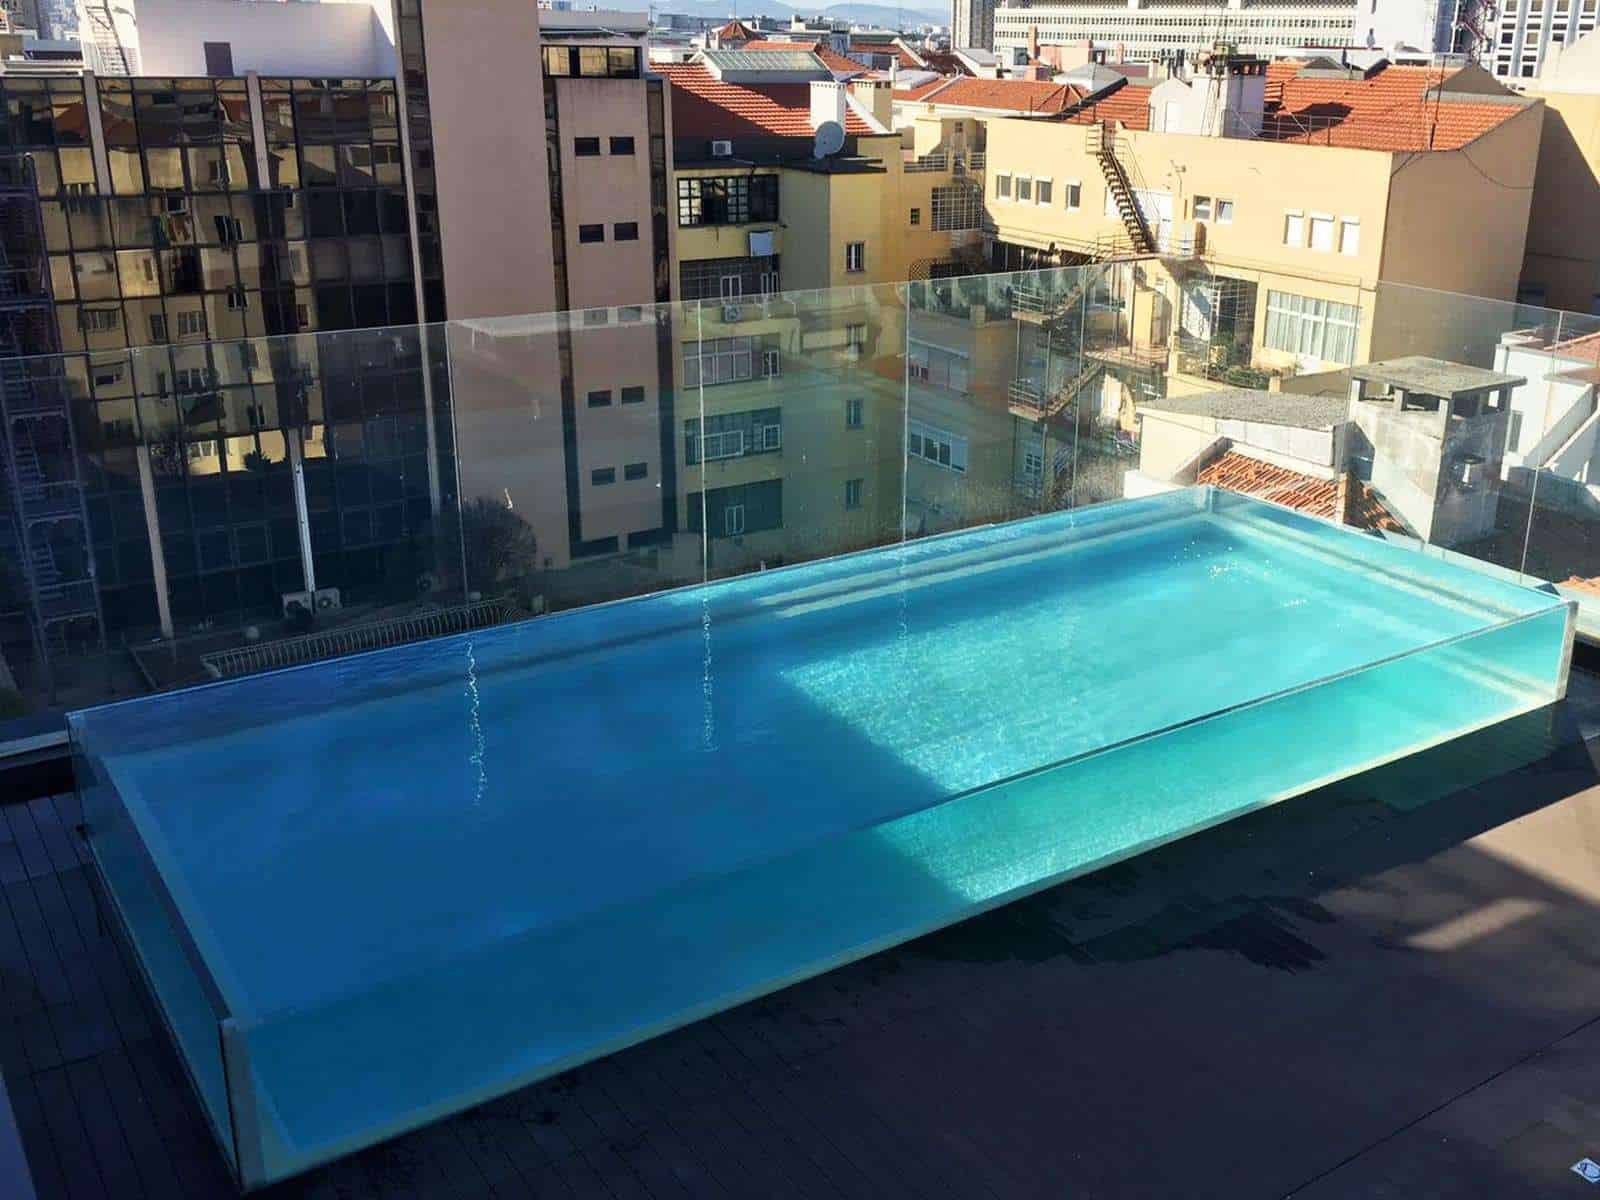 4 Side Transparent Swimming Pool - Acrylic Panel Installations